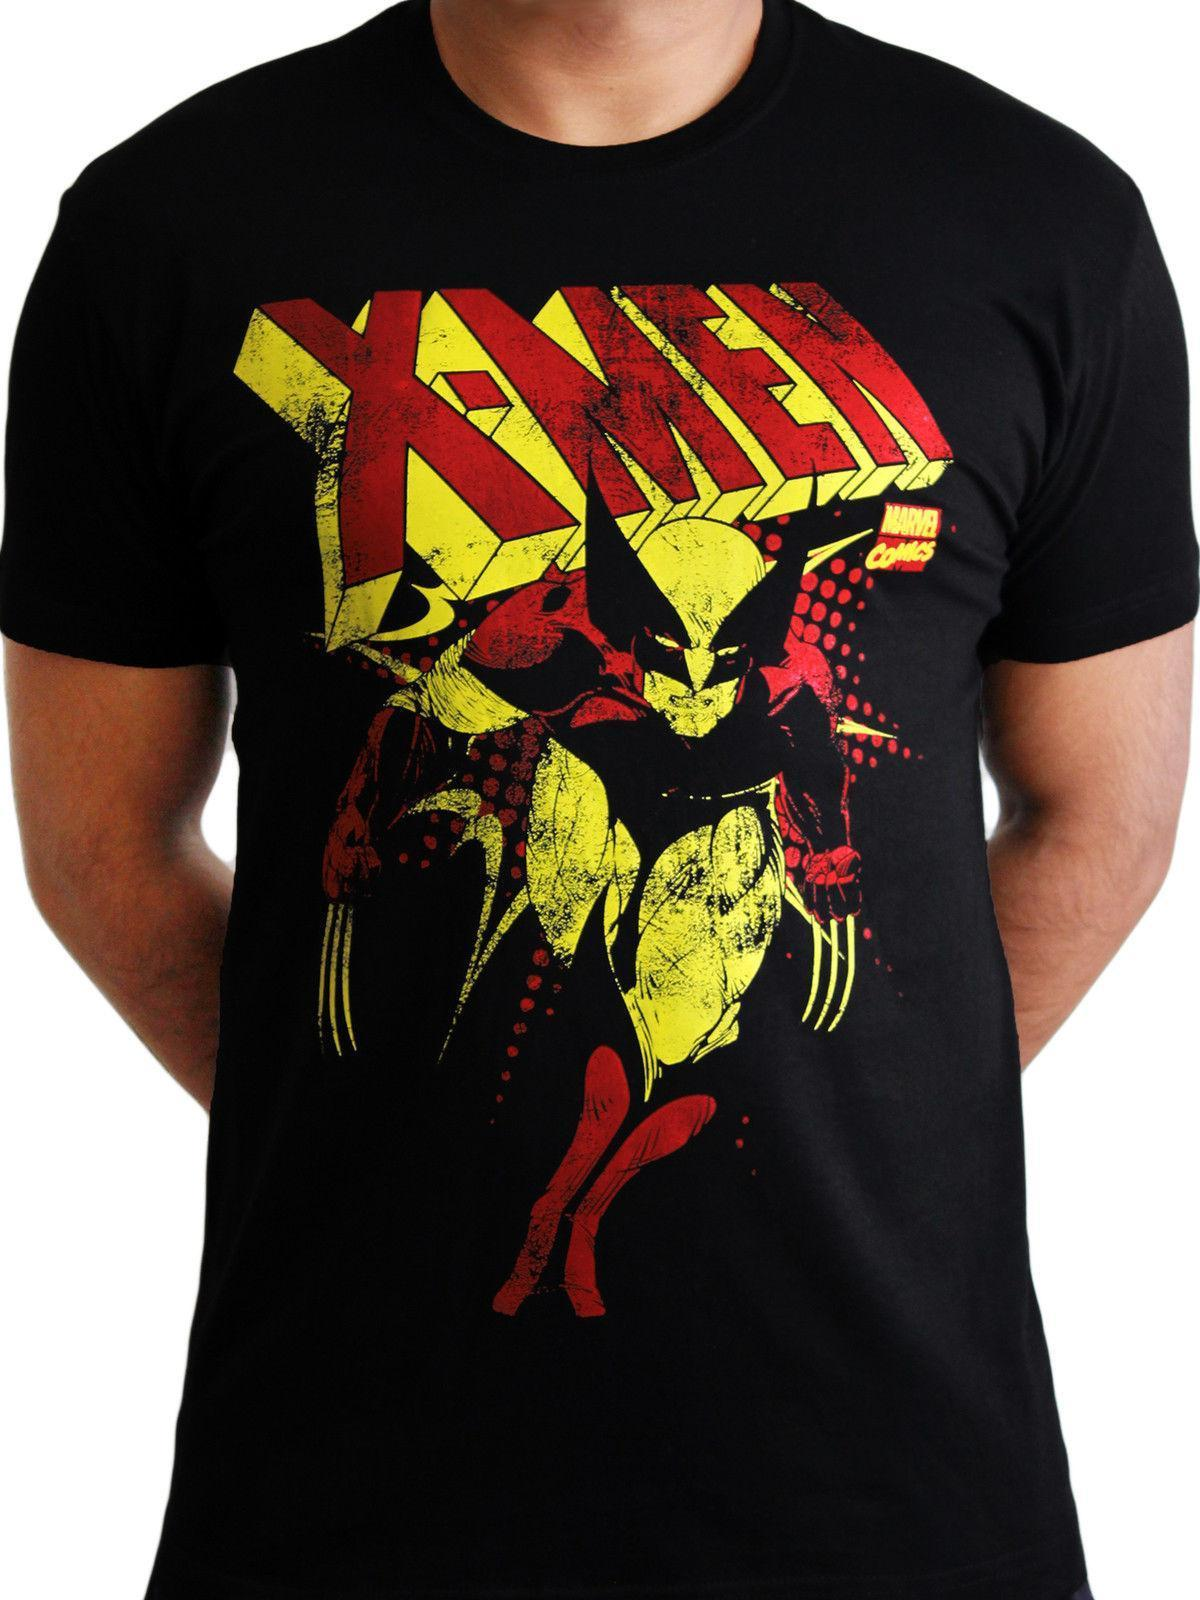 96ecb9c0 X Men Wolverine Distressed Official Marvel Avengers Mens Black T Shirt Raid Shirt  T Shirts In A Day From Linnan00003, $14.67| DHgate.Com